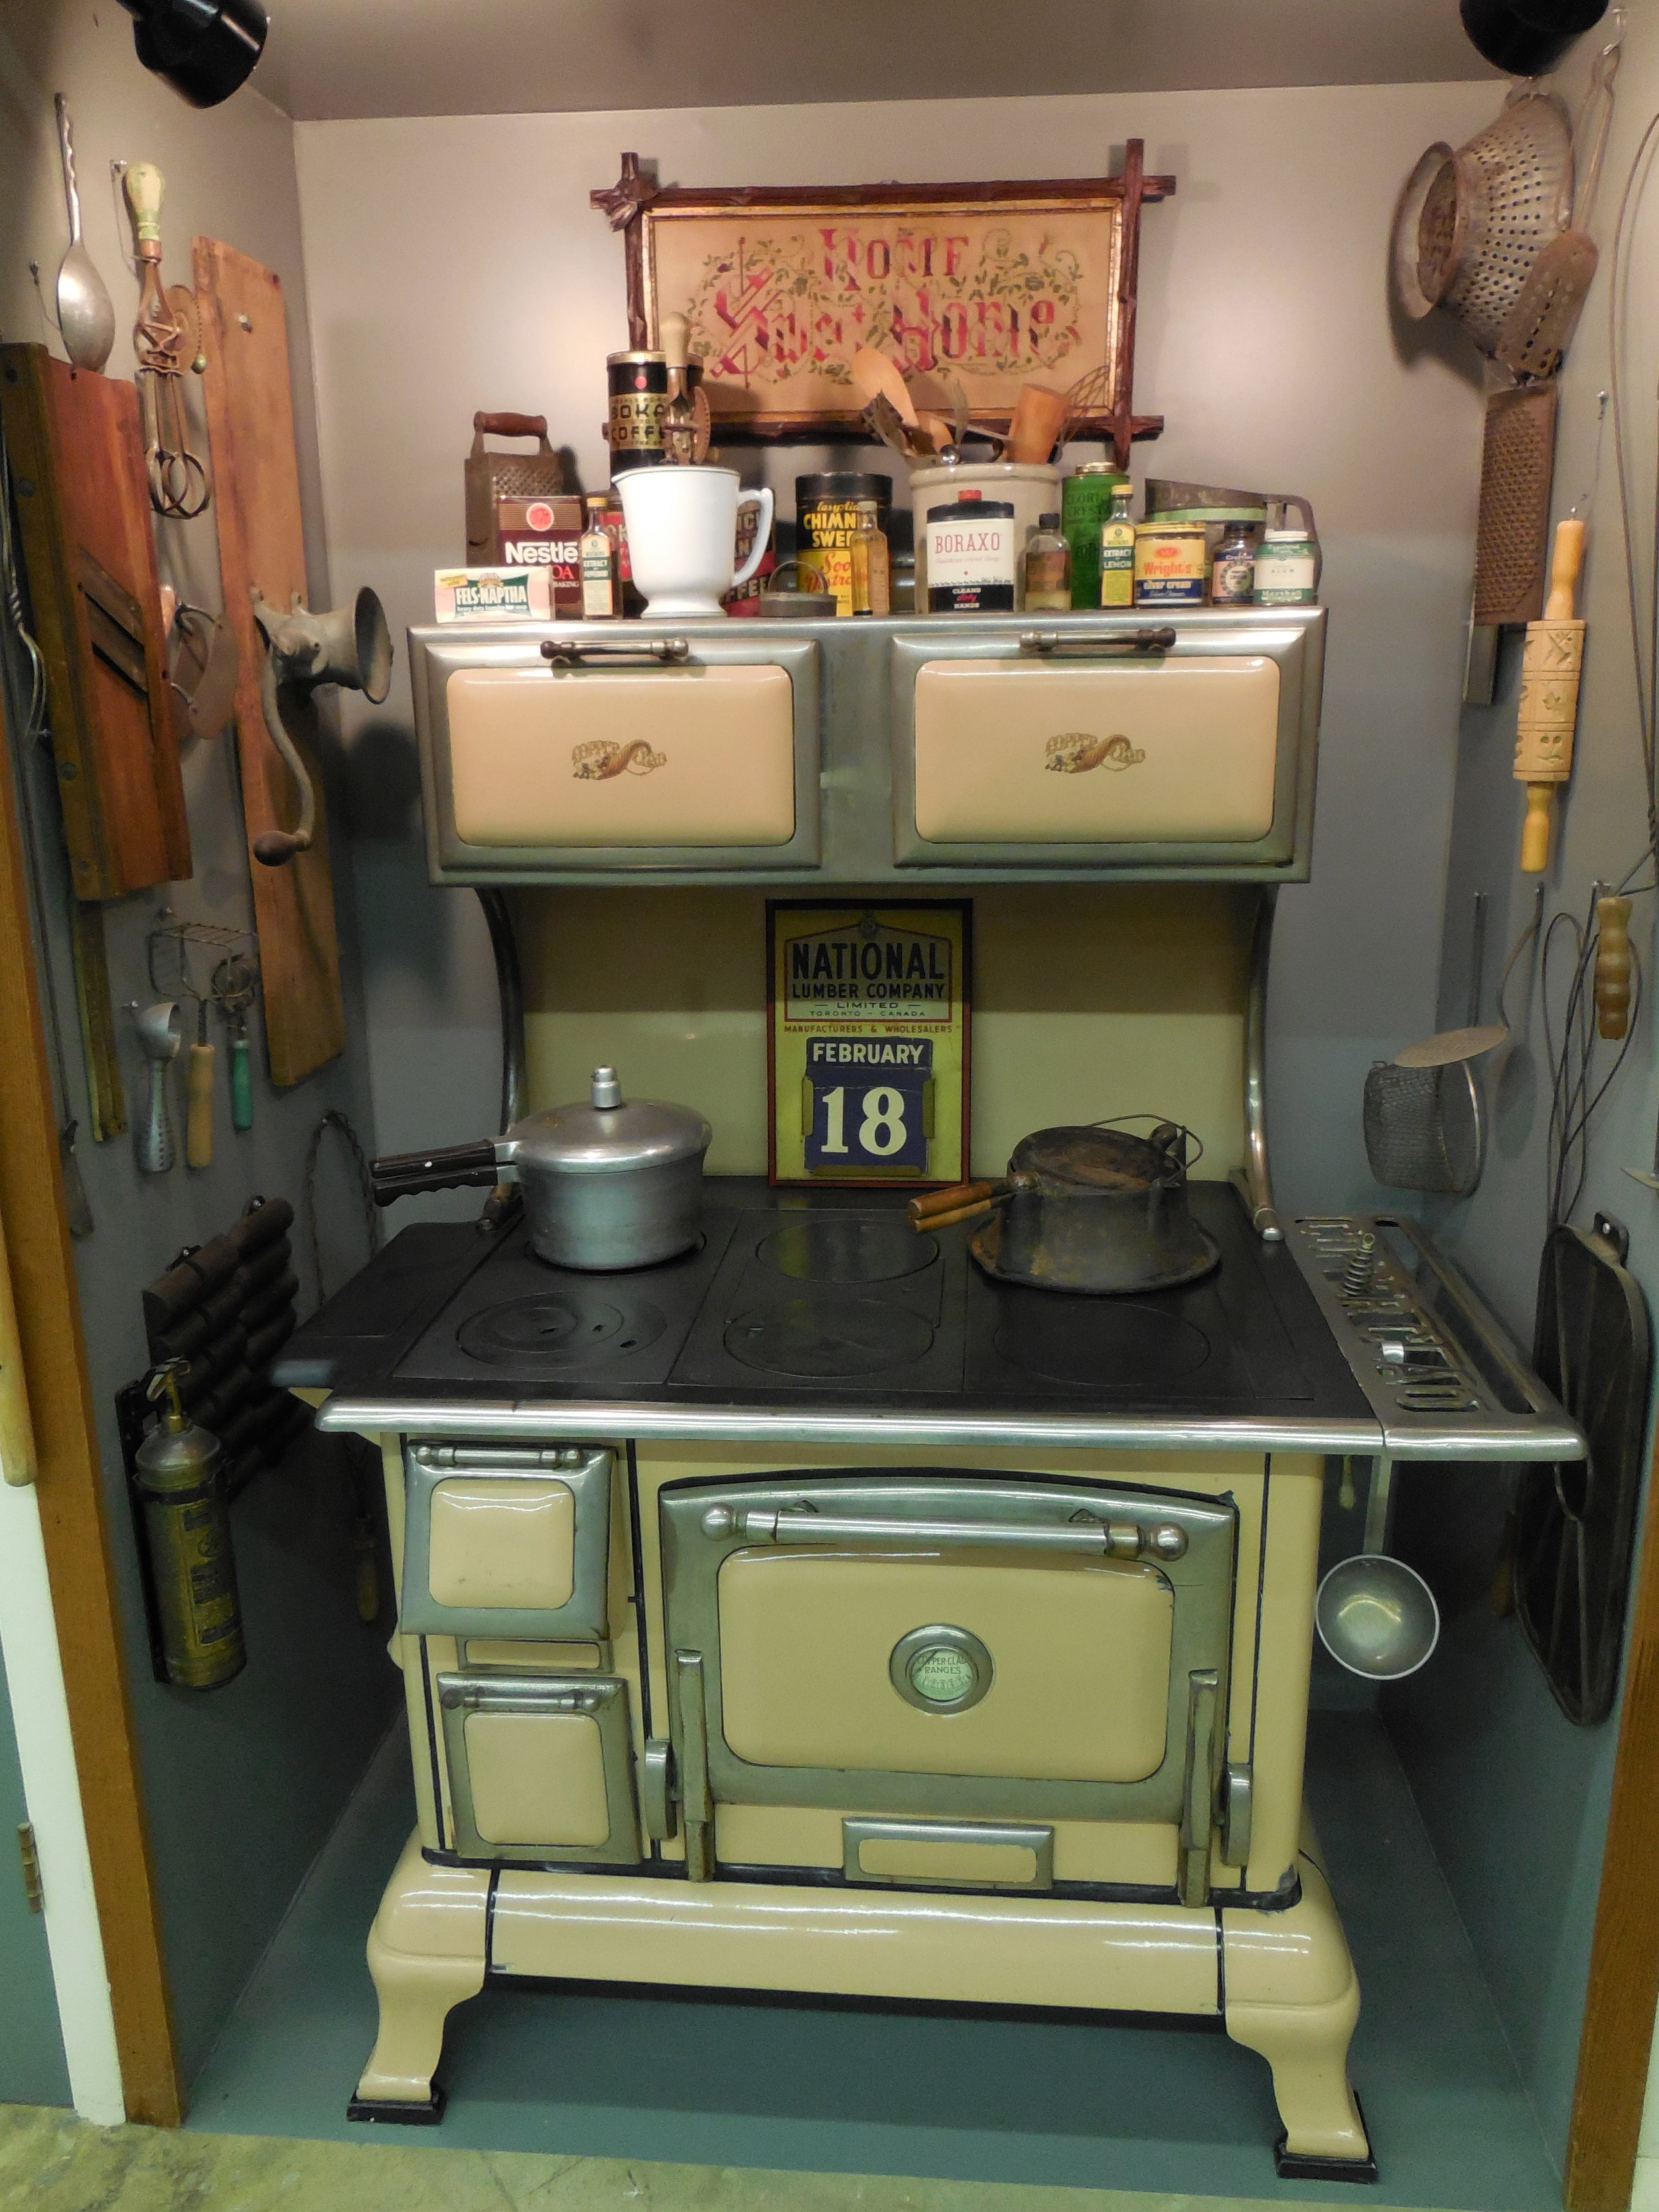 Cook Stove and Kitchenware